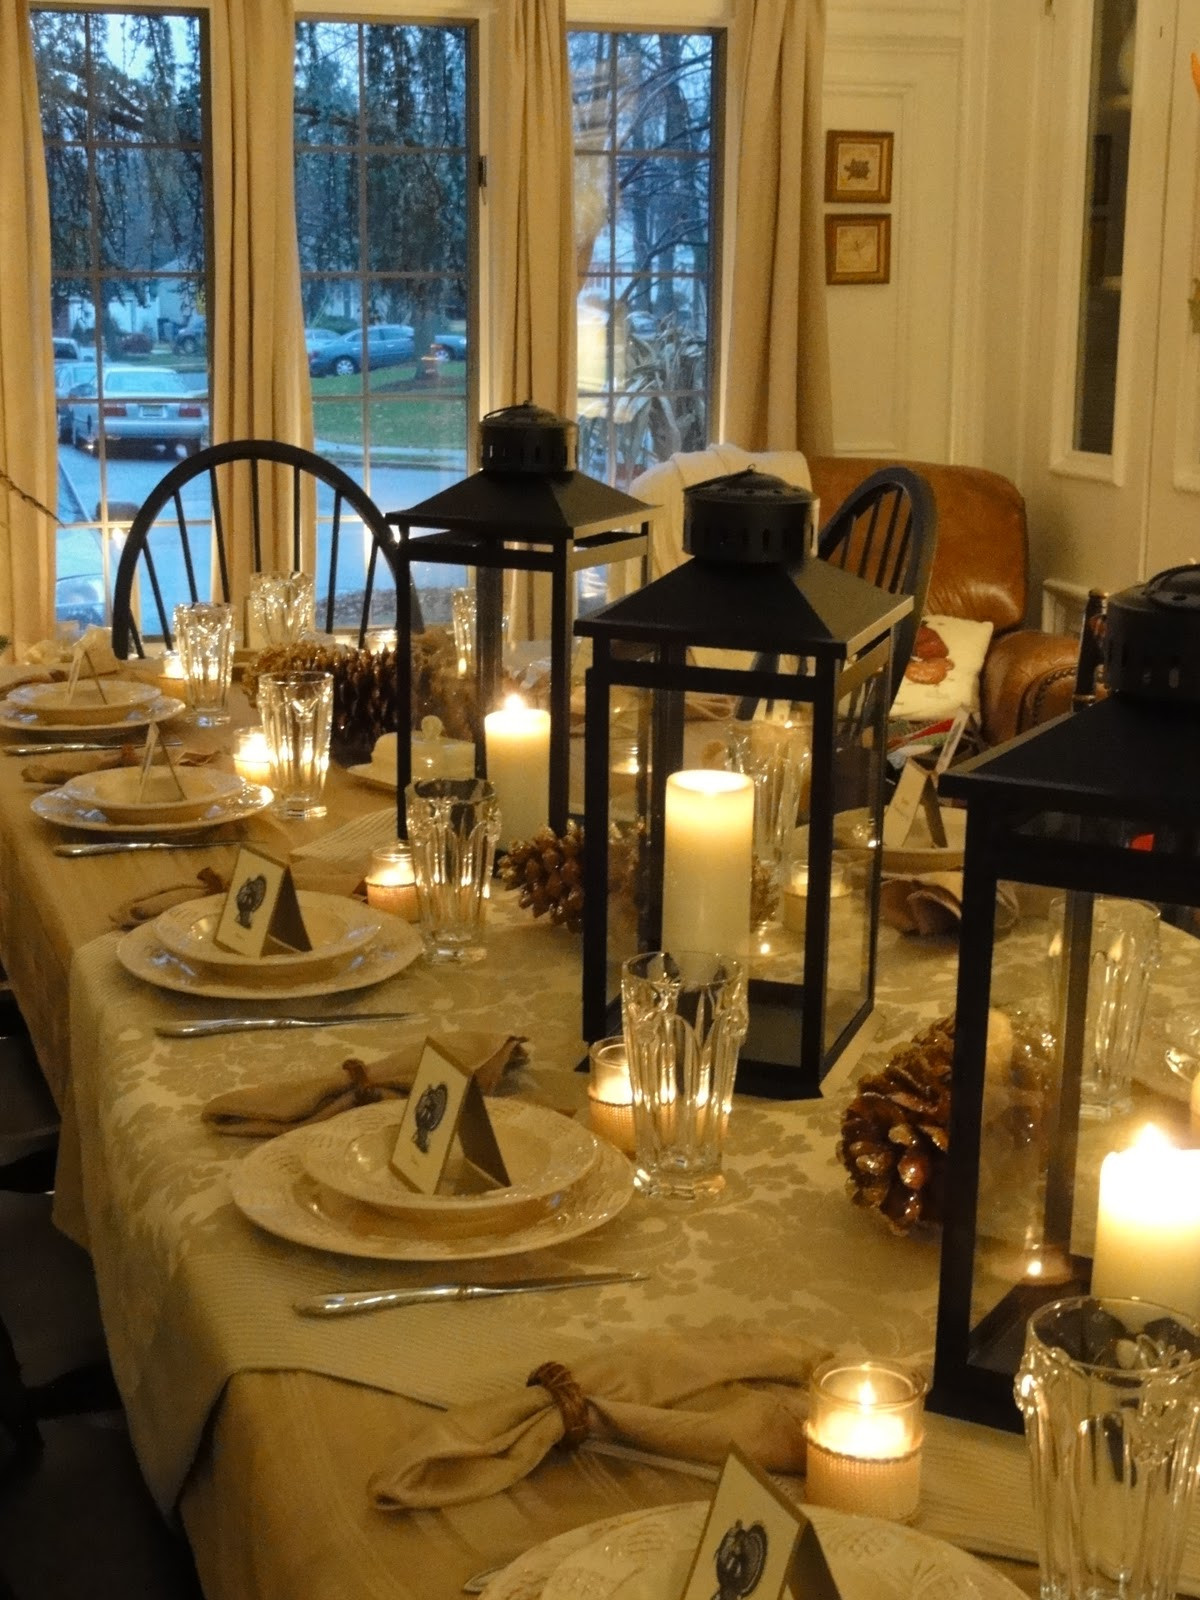 Thanksgiving Dinner Table Decorations  16 Thanksgiving Table Ideas table setting